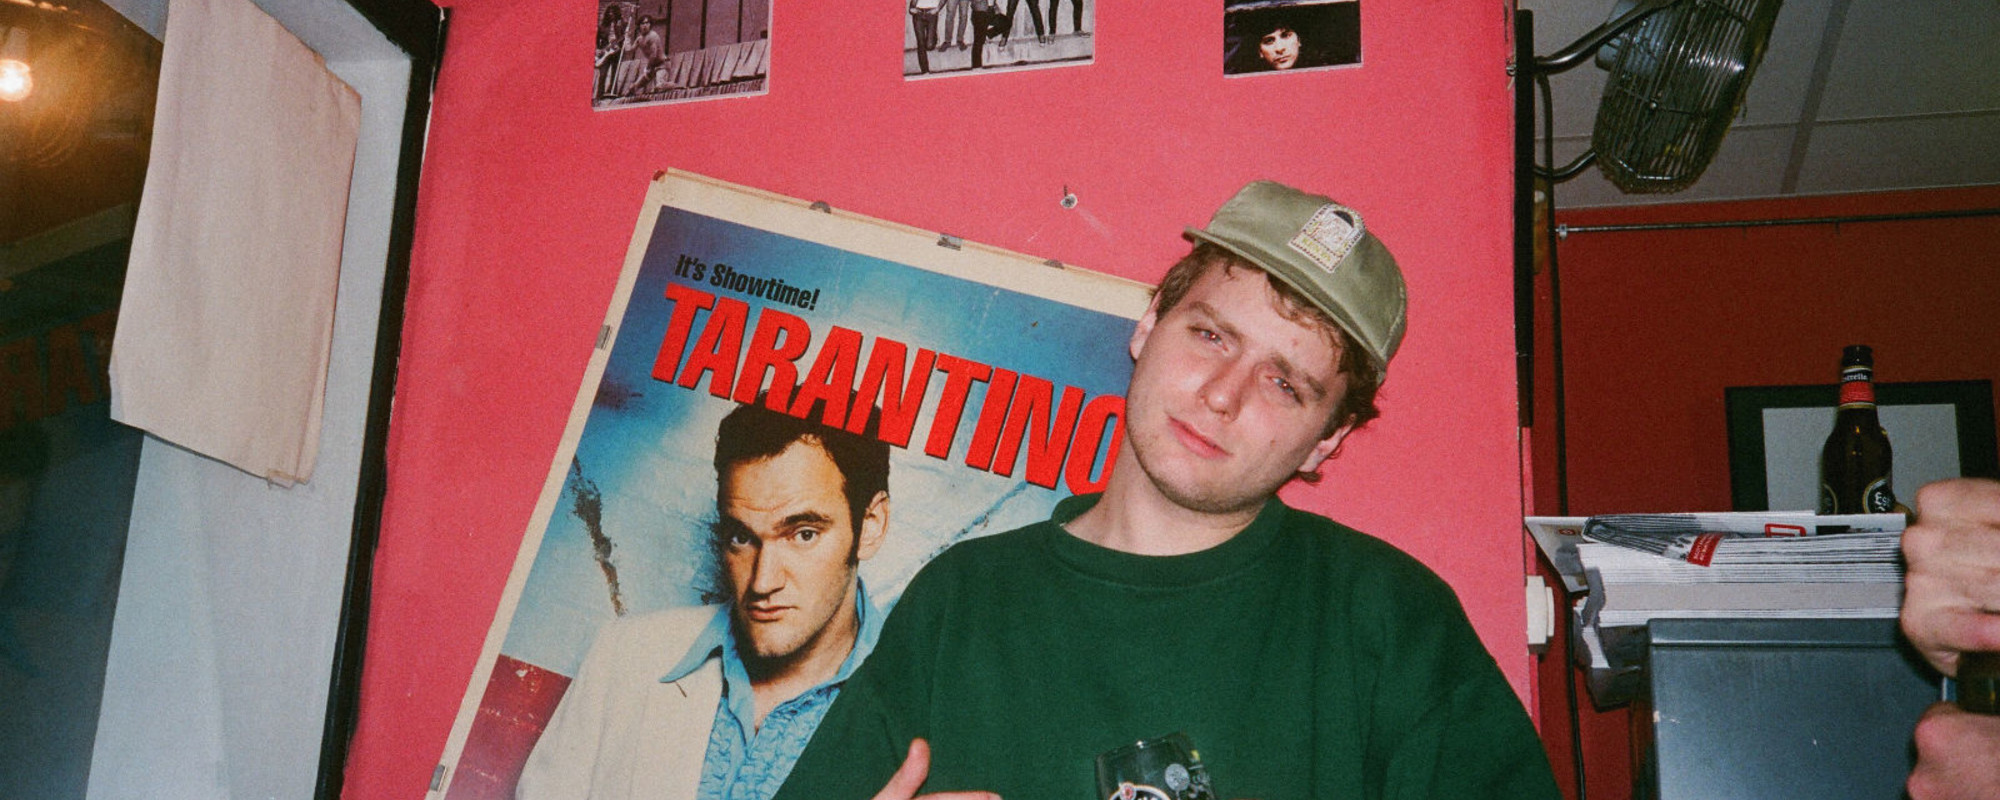 Estuvimos en un bar con Mac DeMarco